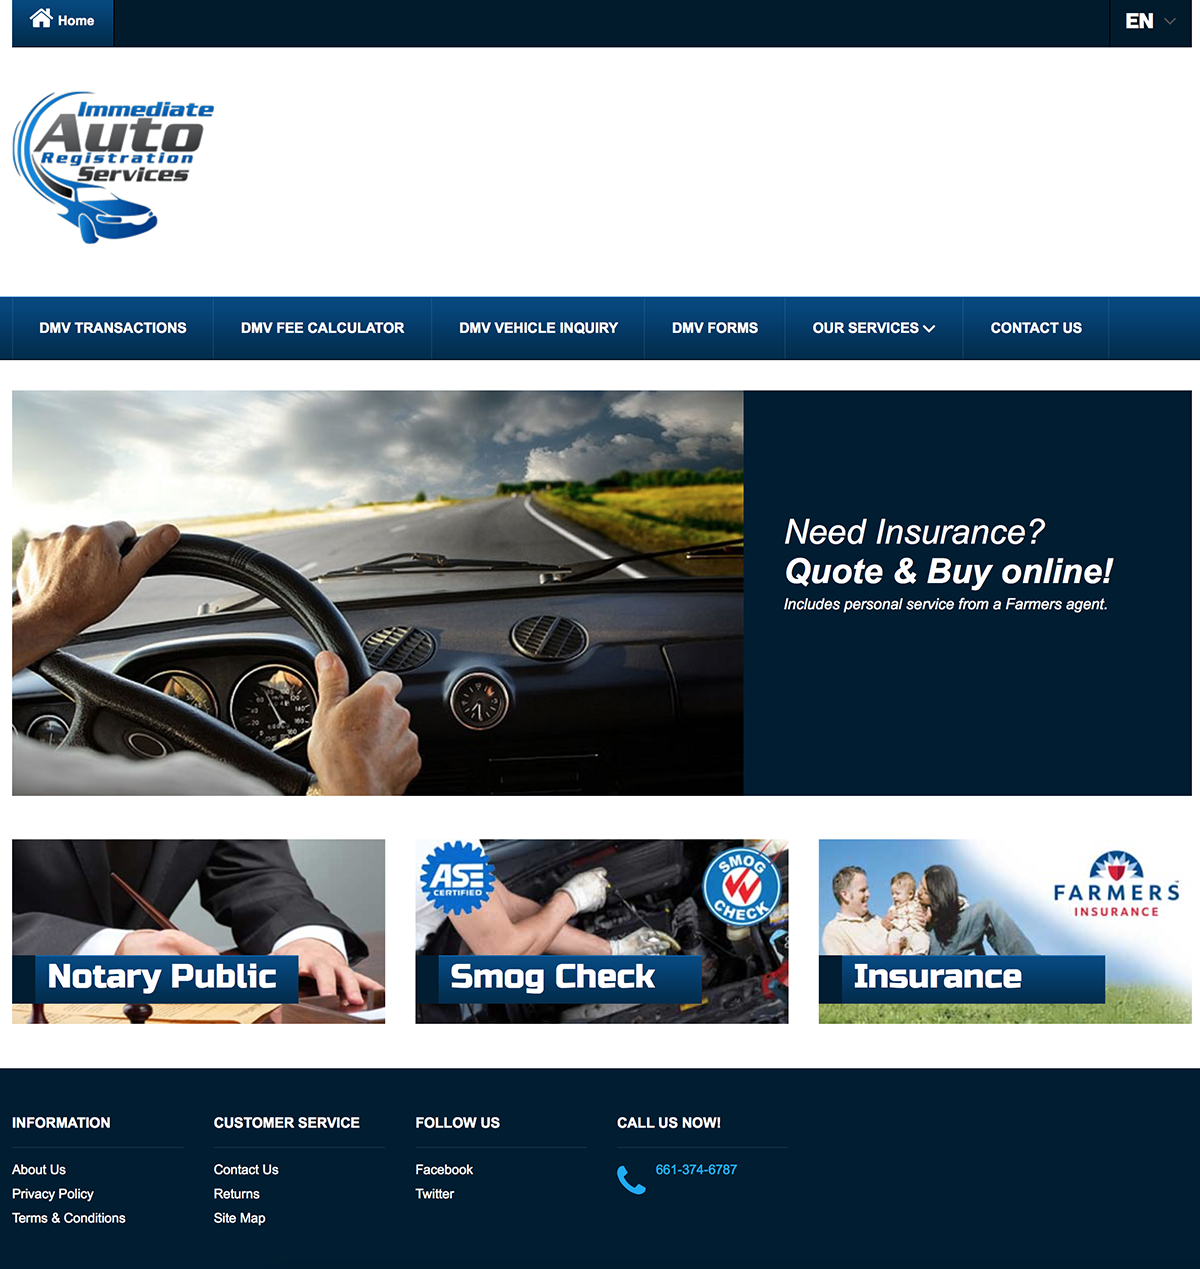 Immediate Auto Registration Services